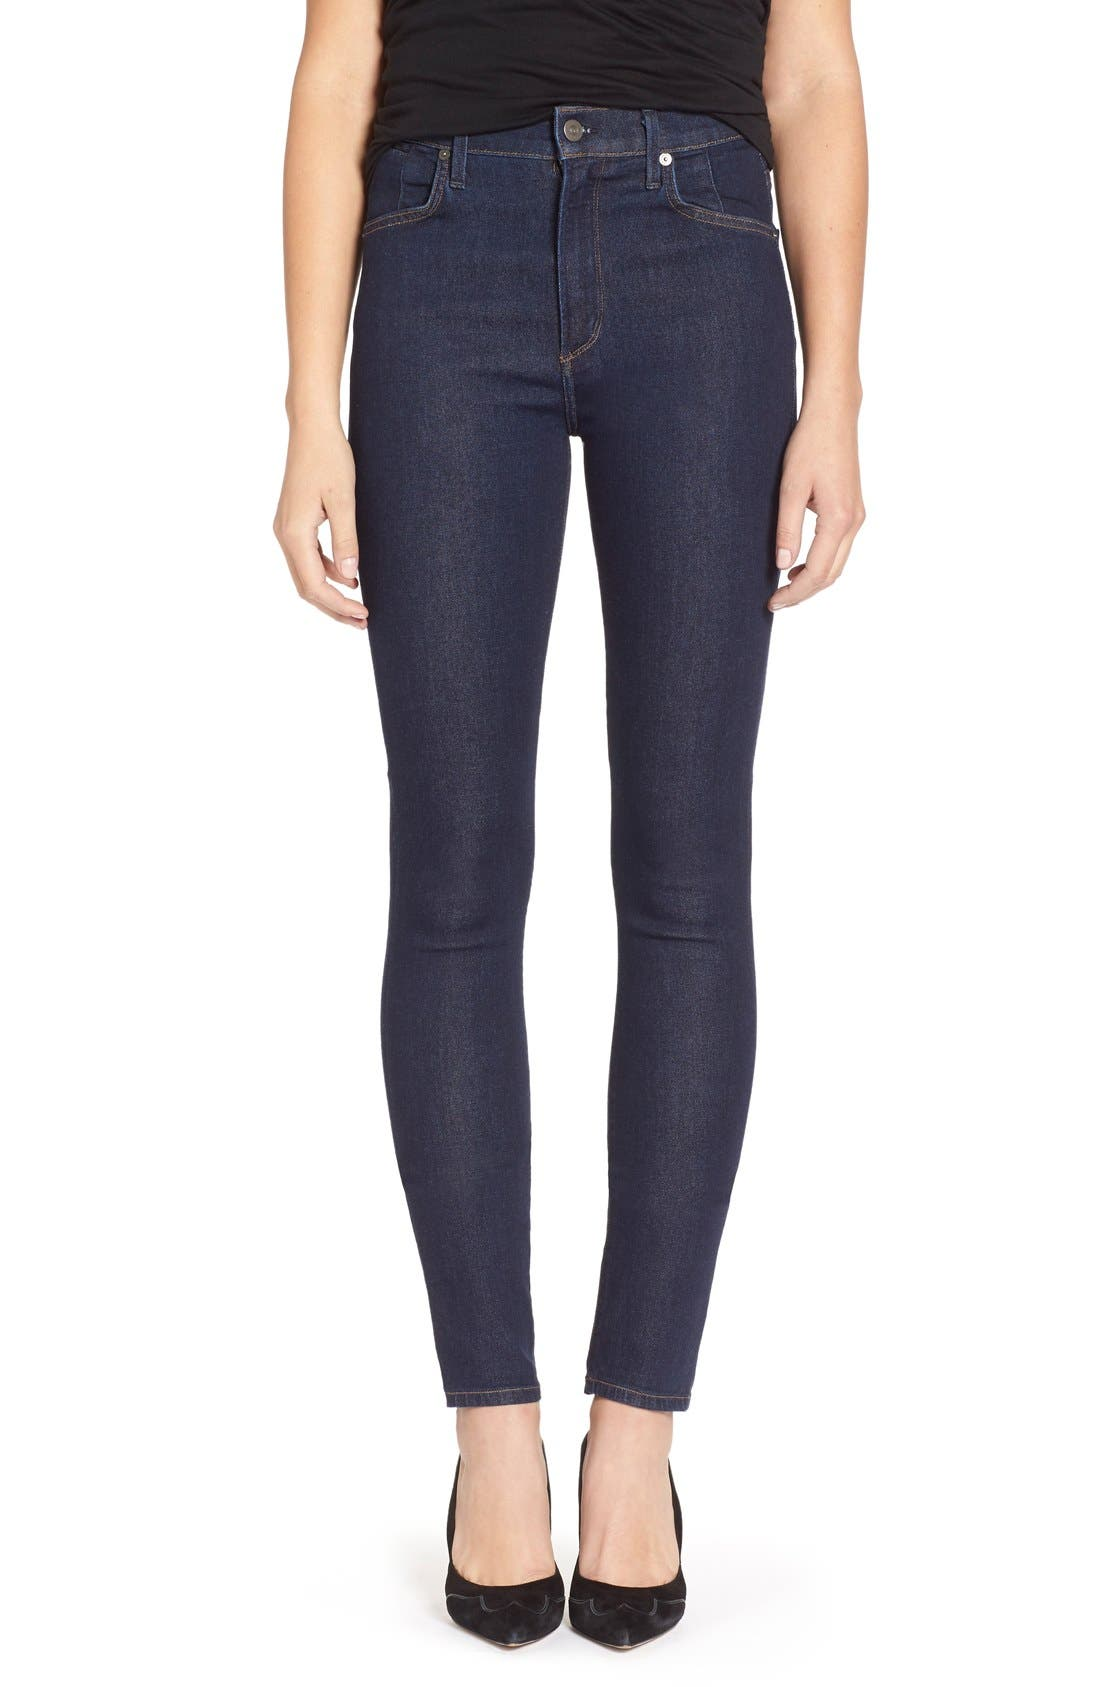 Main Image - Citizens of Humanity 'Carlie' High Rise Skinny Jeans (Clean Blue)